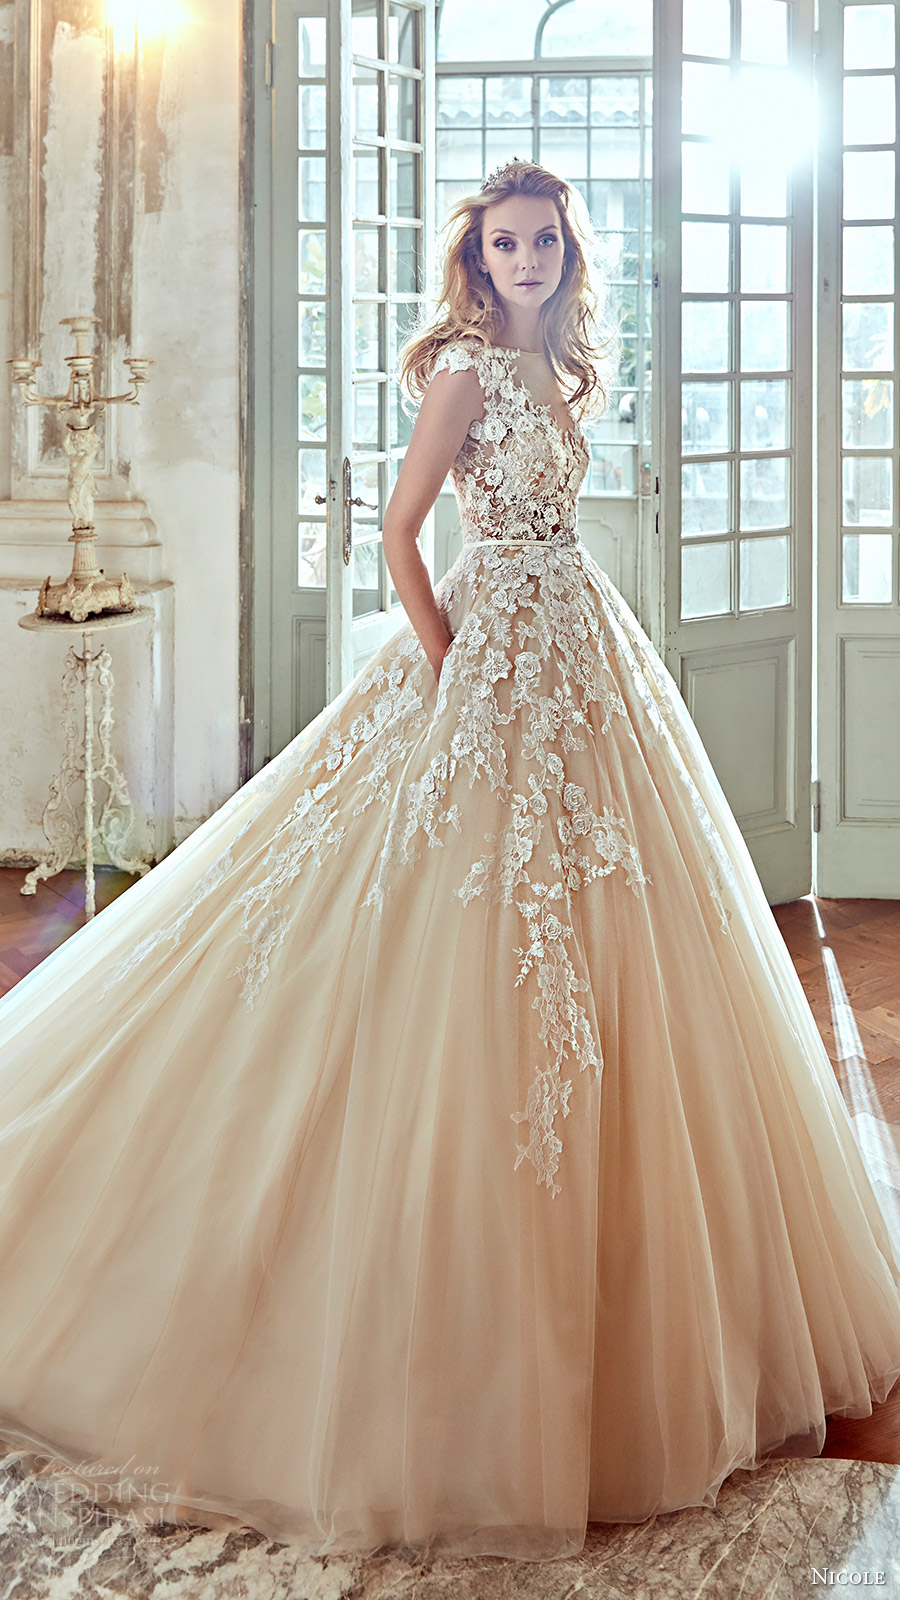 Popular wedding dresses in 2016 part 1 ball gowns a for Image of wedding dresses